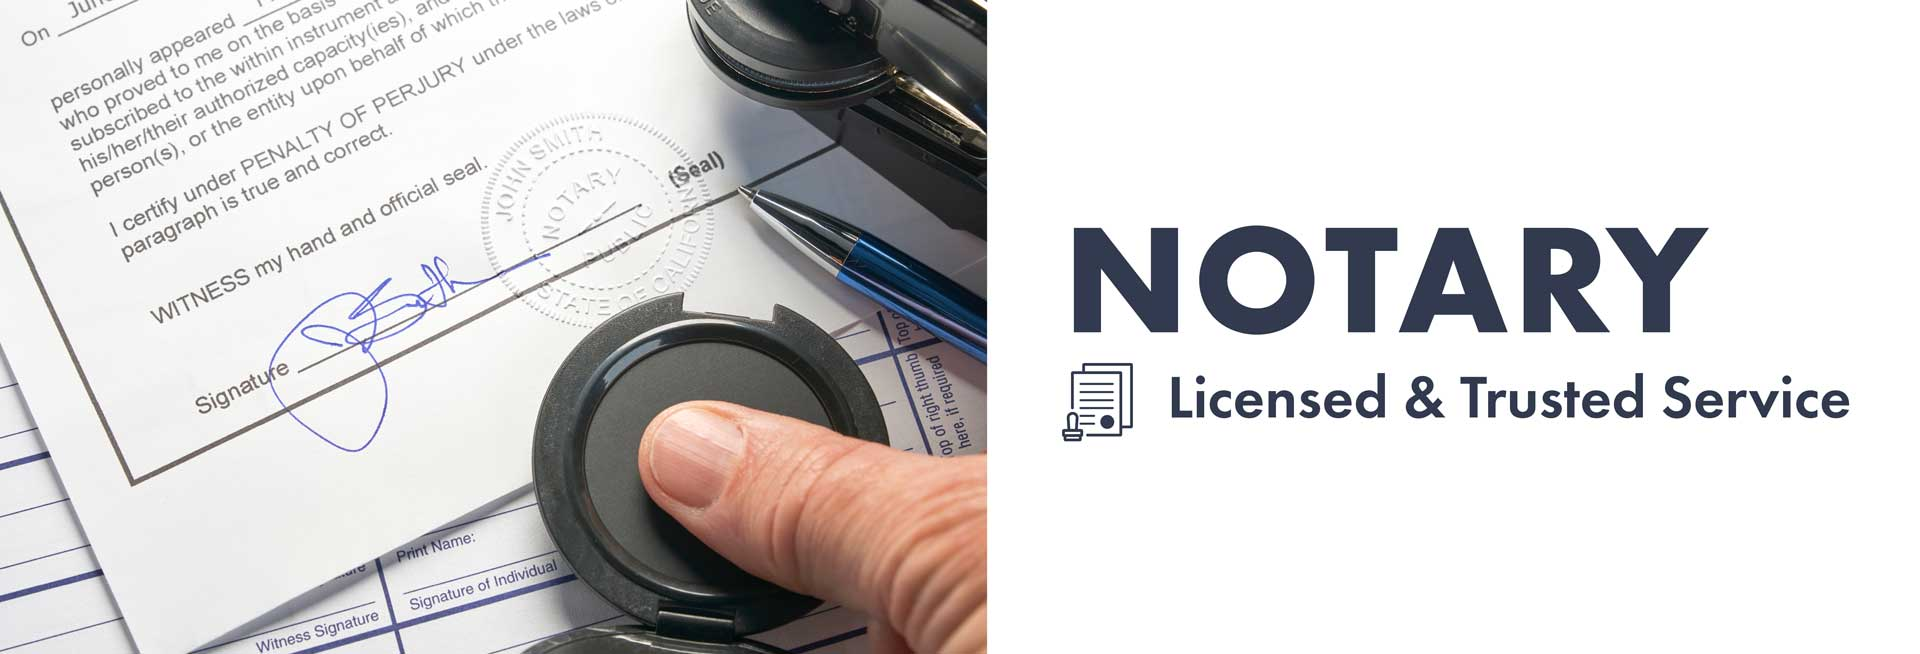 Notary - Licensed and Trusted Service